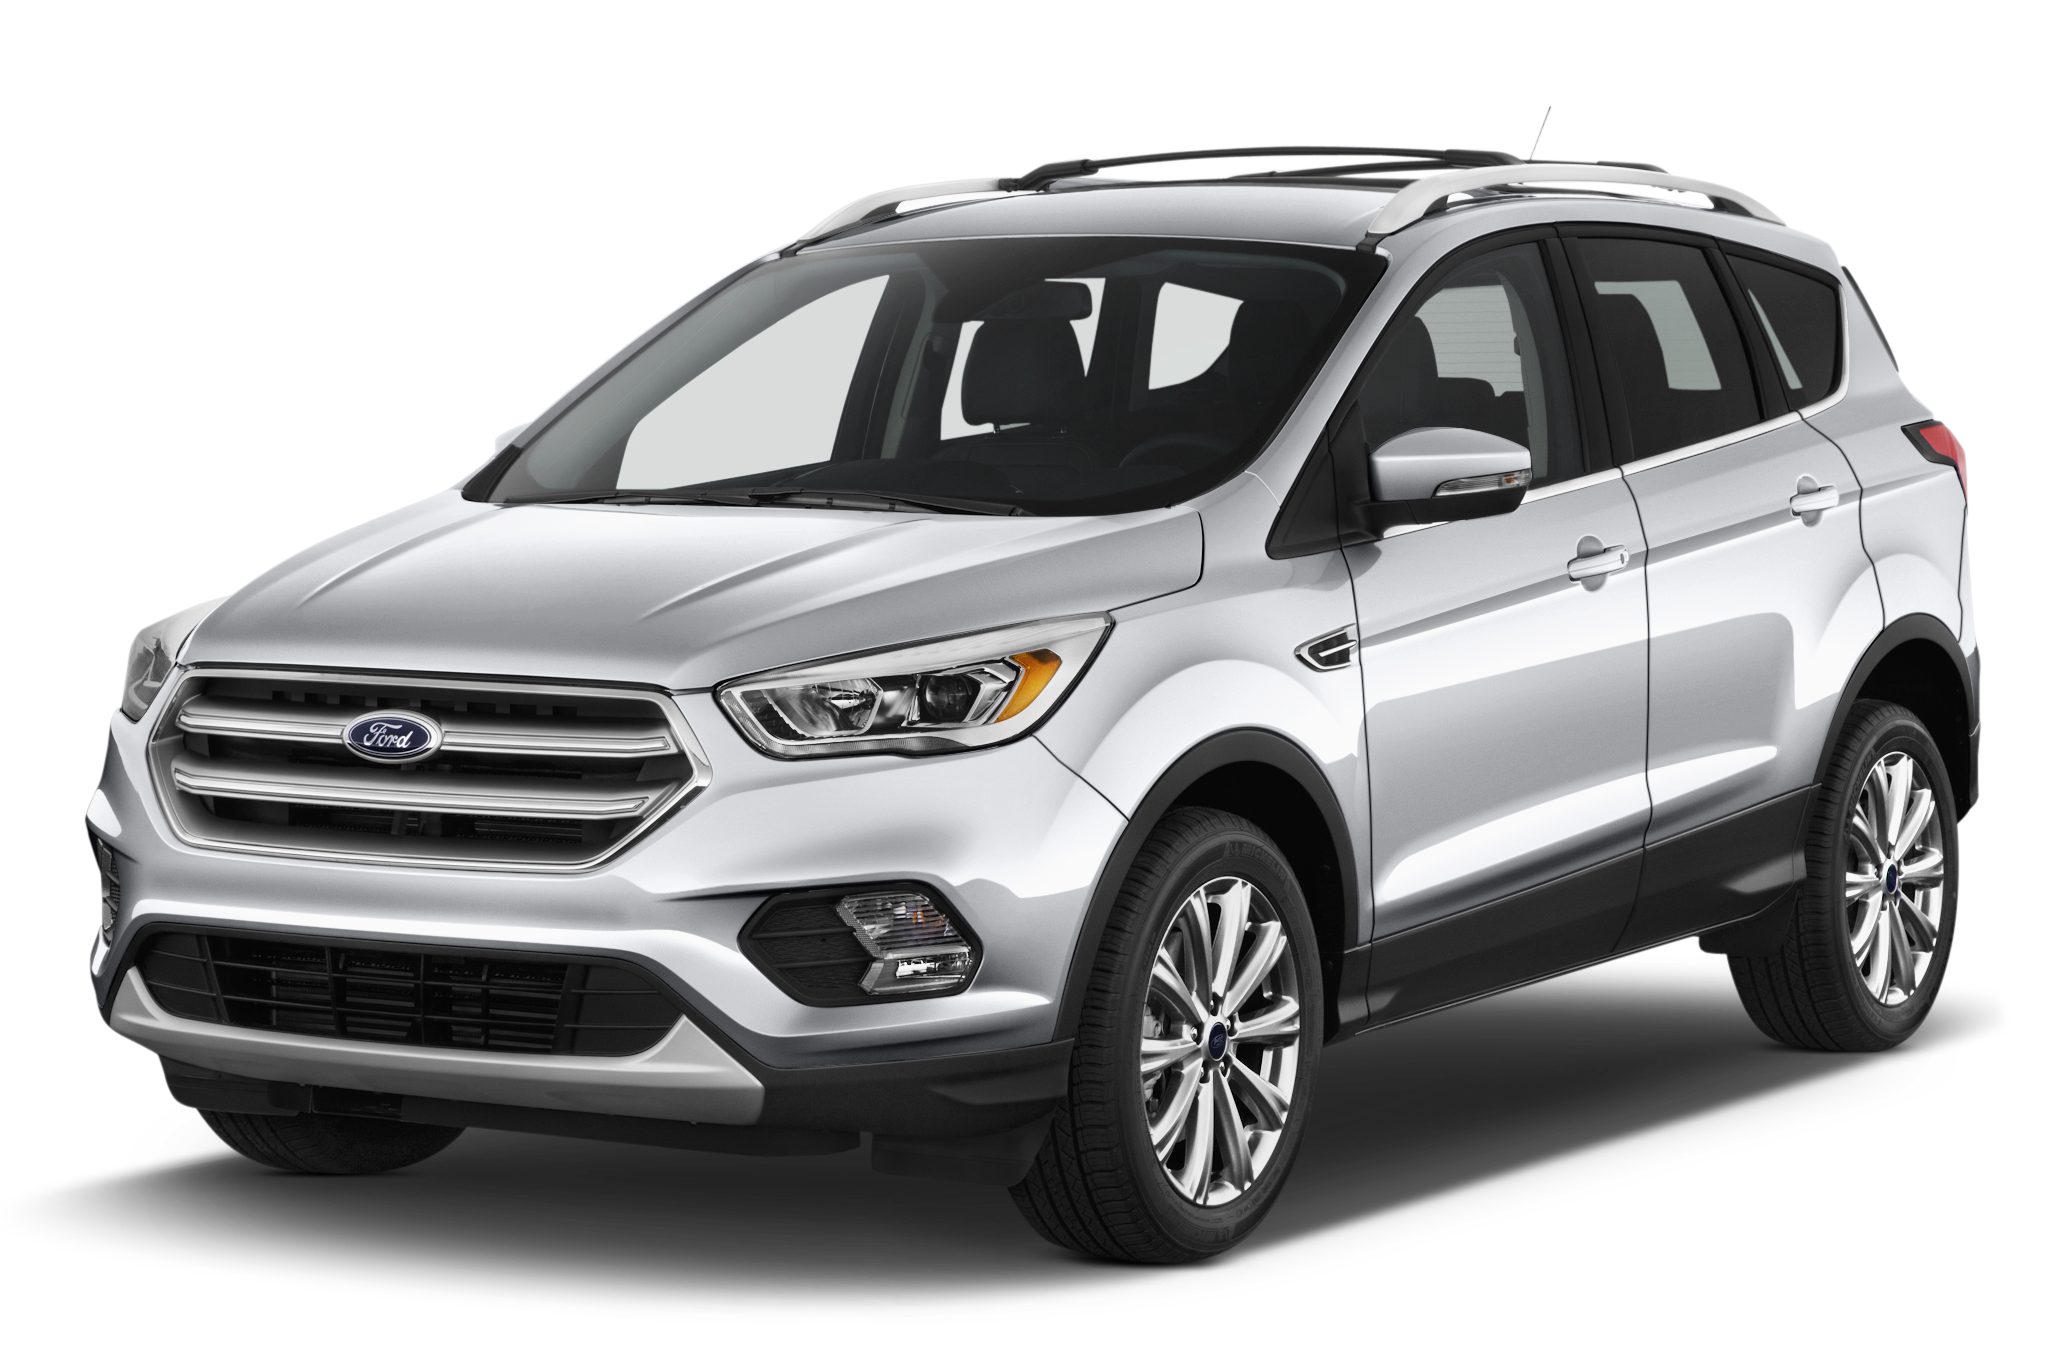 2017 ford escape review automobile magazine. Black Bedroom Furniture Sets. Home Design Ideas